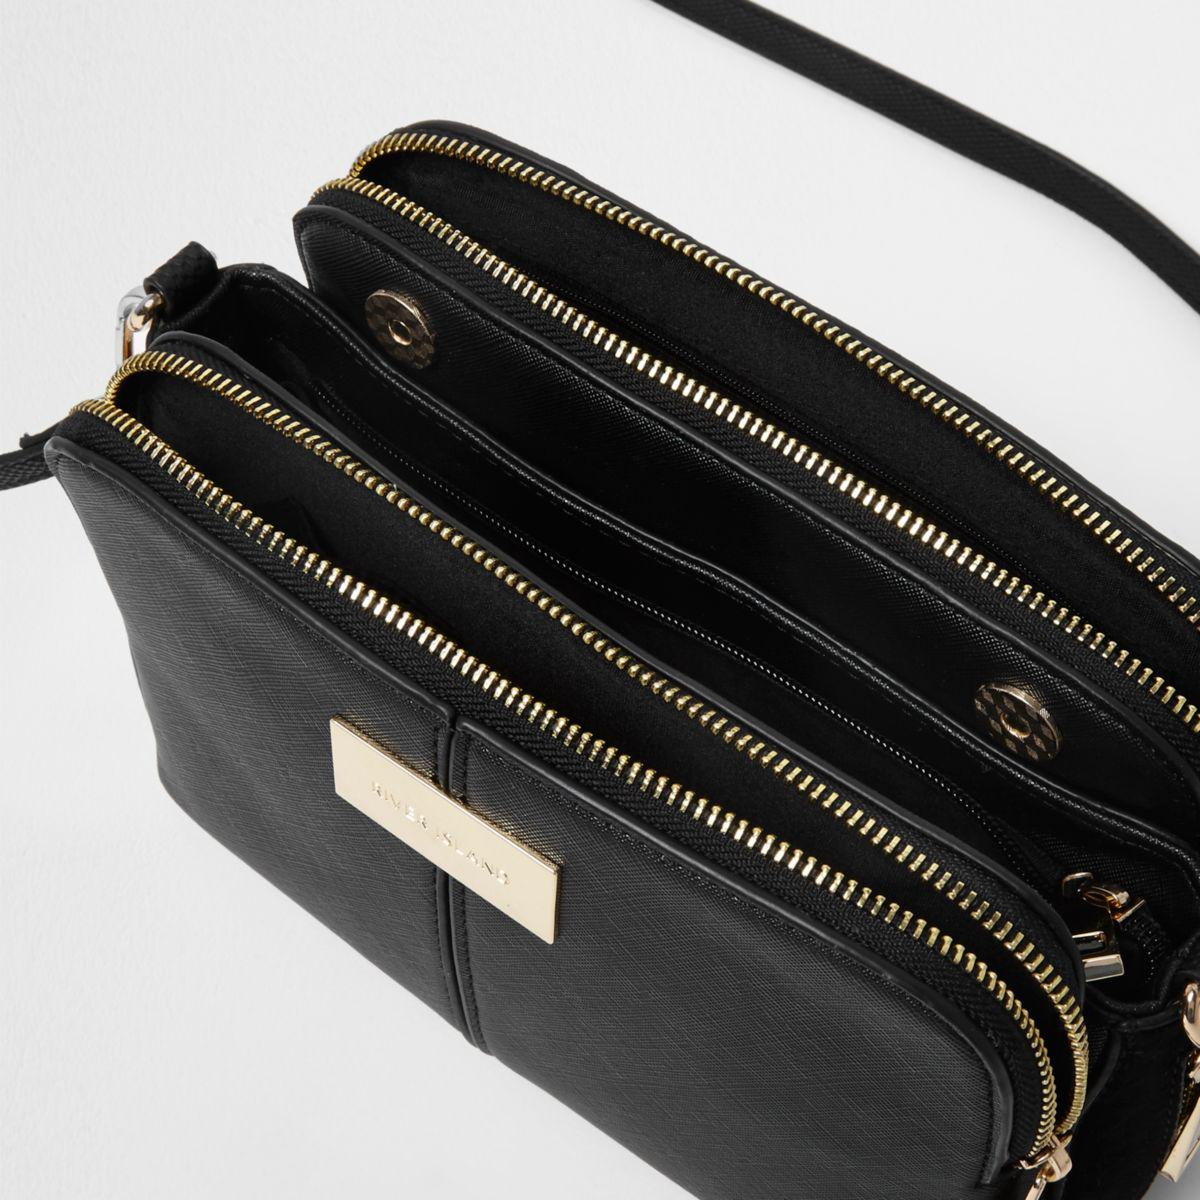 Lyst - River Island Black Triple Compartment Cross Body Bag in Black